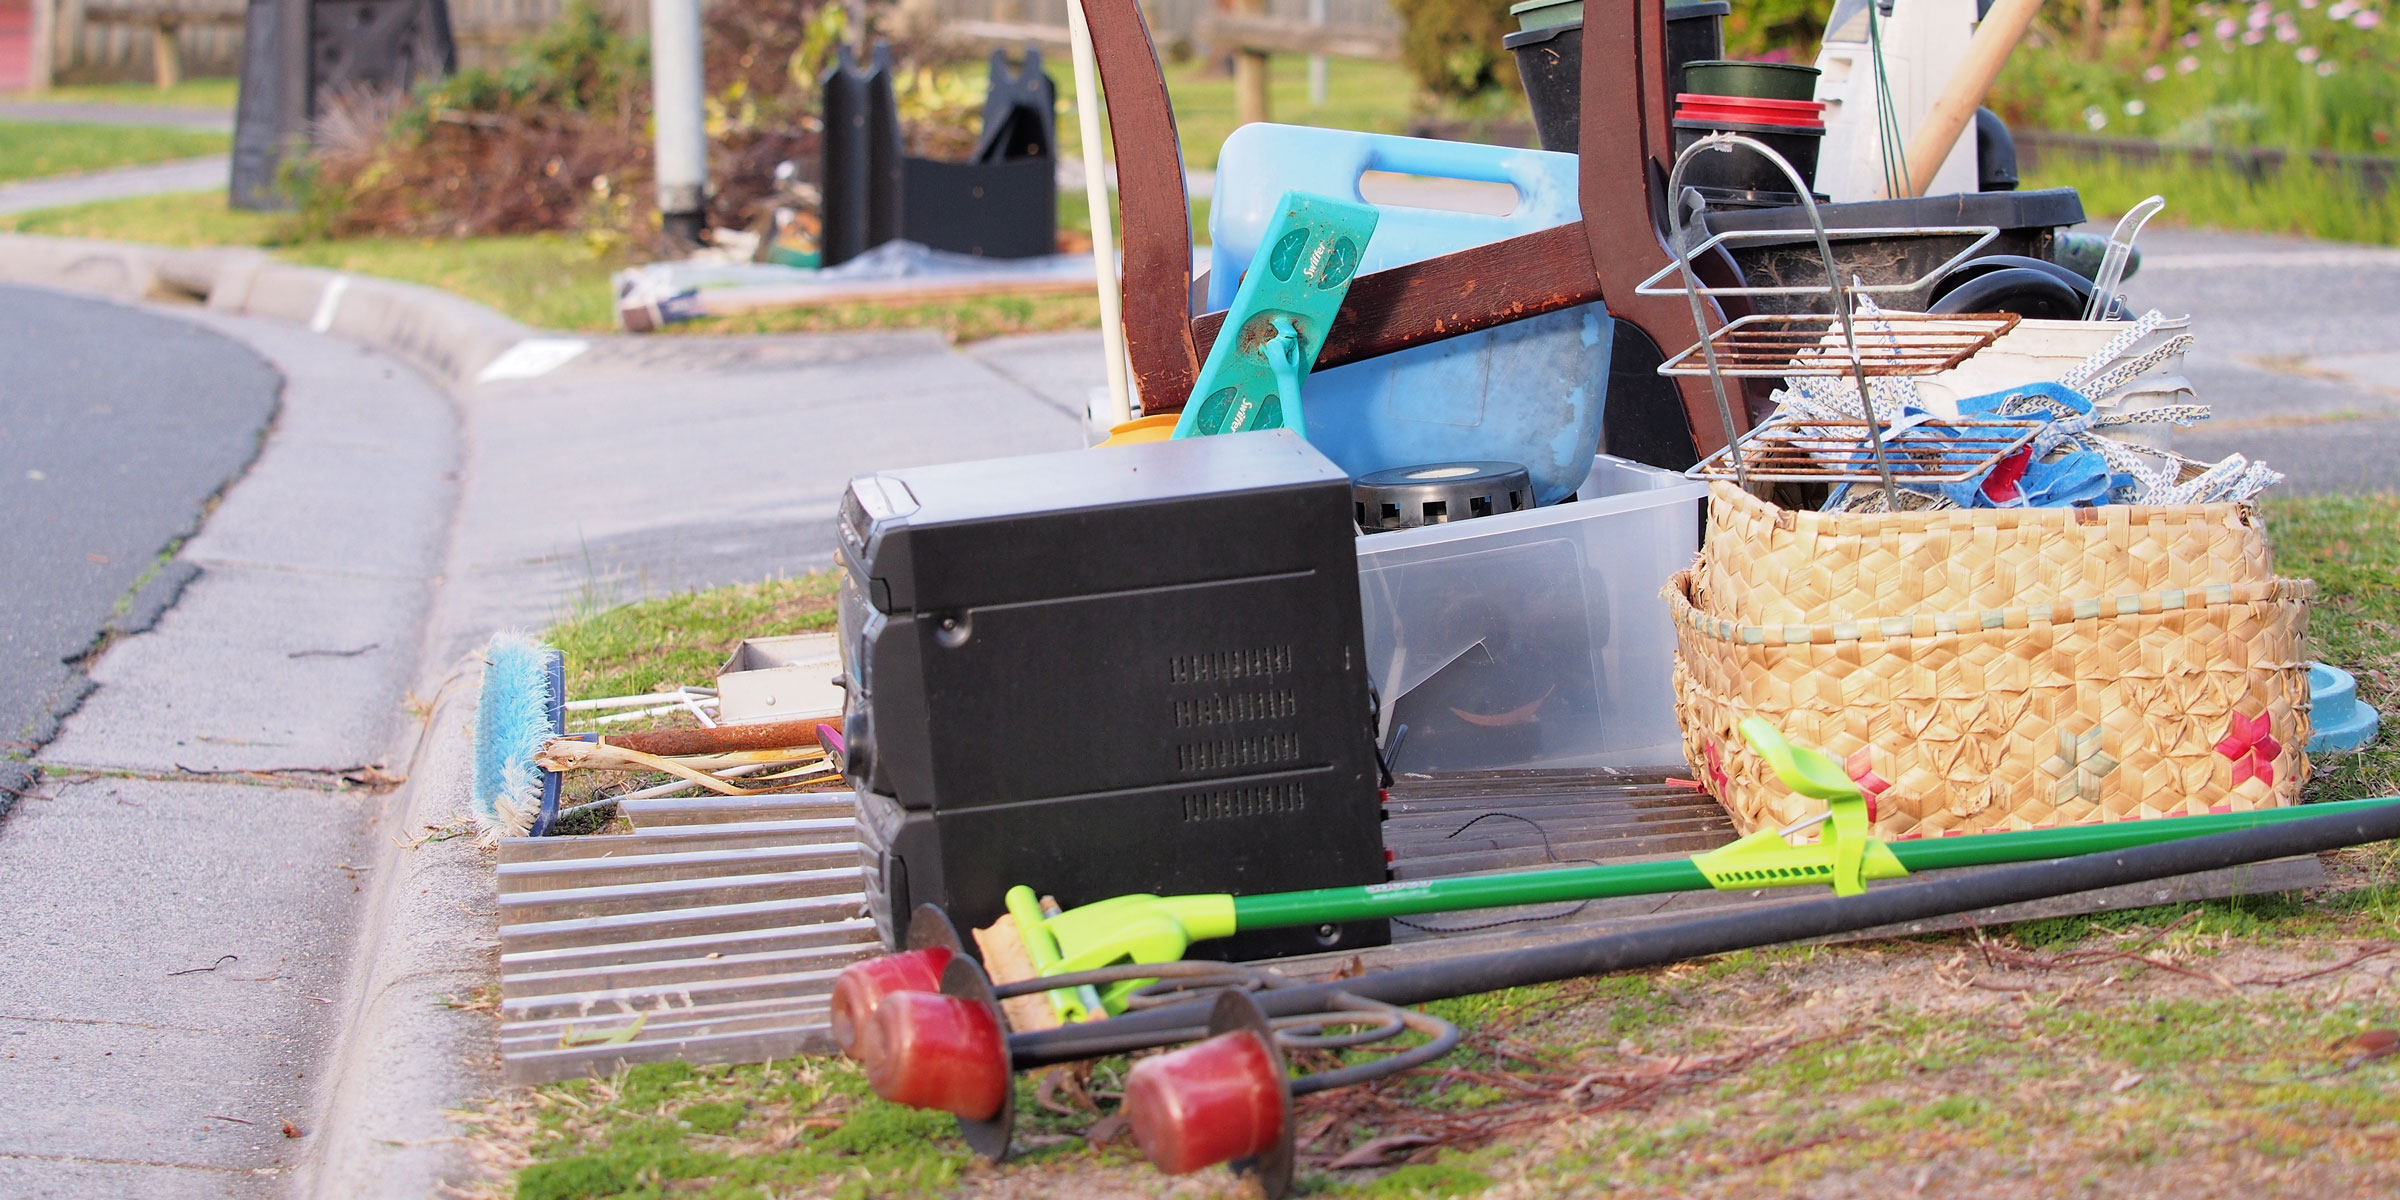 Waste Removers - What is Rubbish Management?